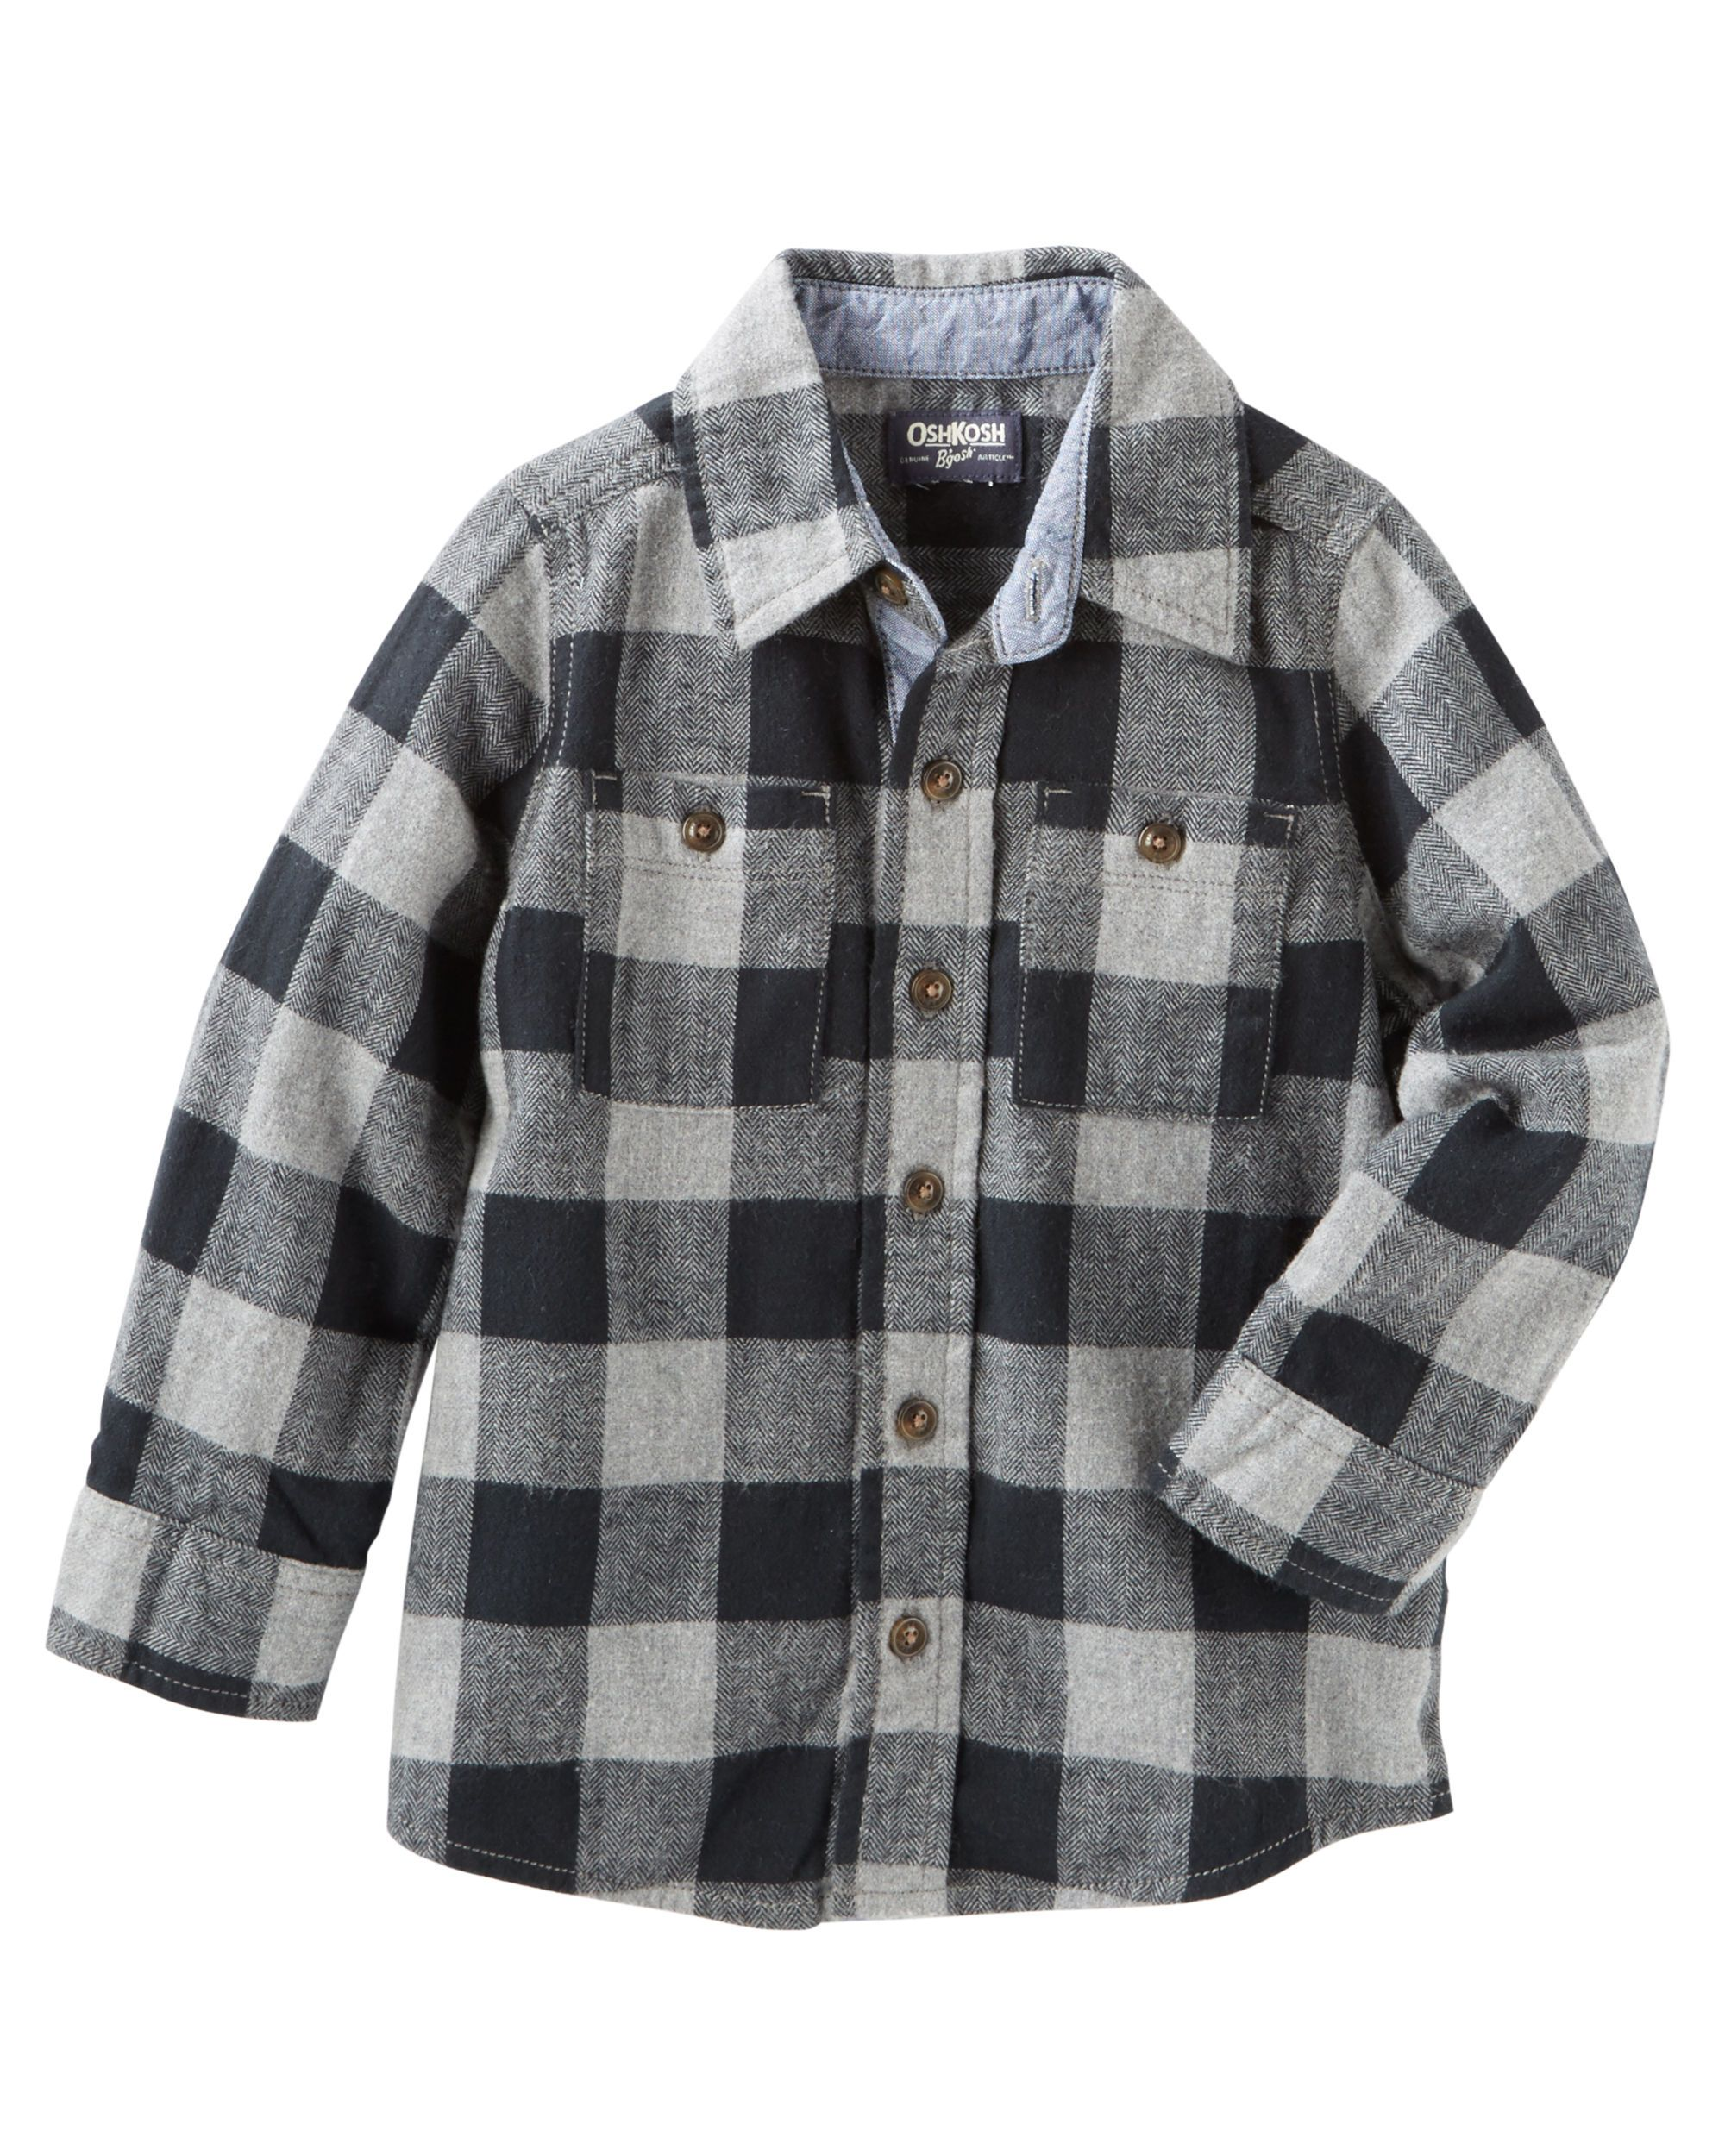 e9327b834 Elevate his tees and sweaters by layering this soft, yarn-dyed plaid  crafted with two pockets for extra style points.